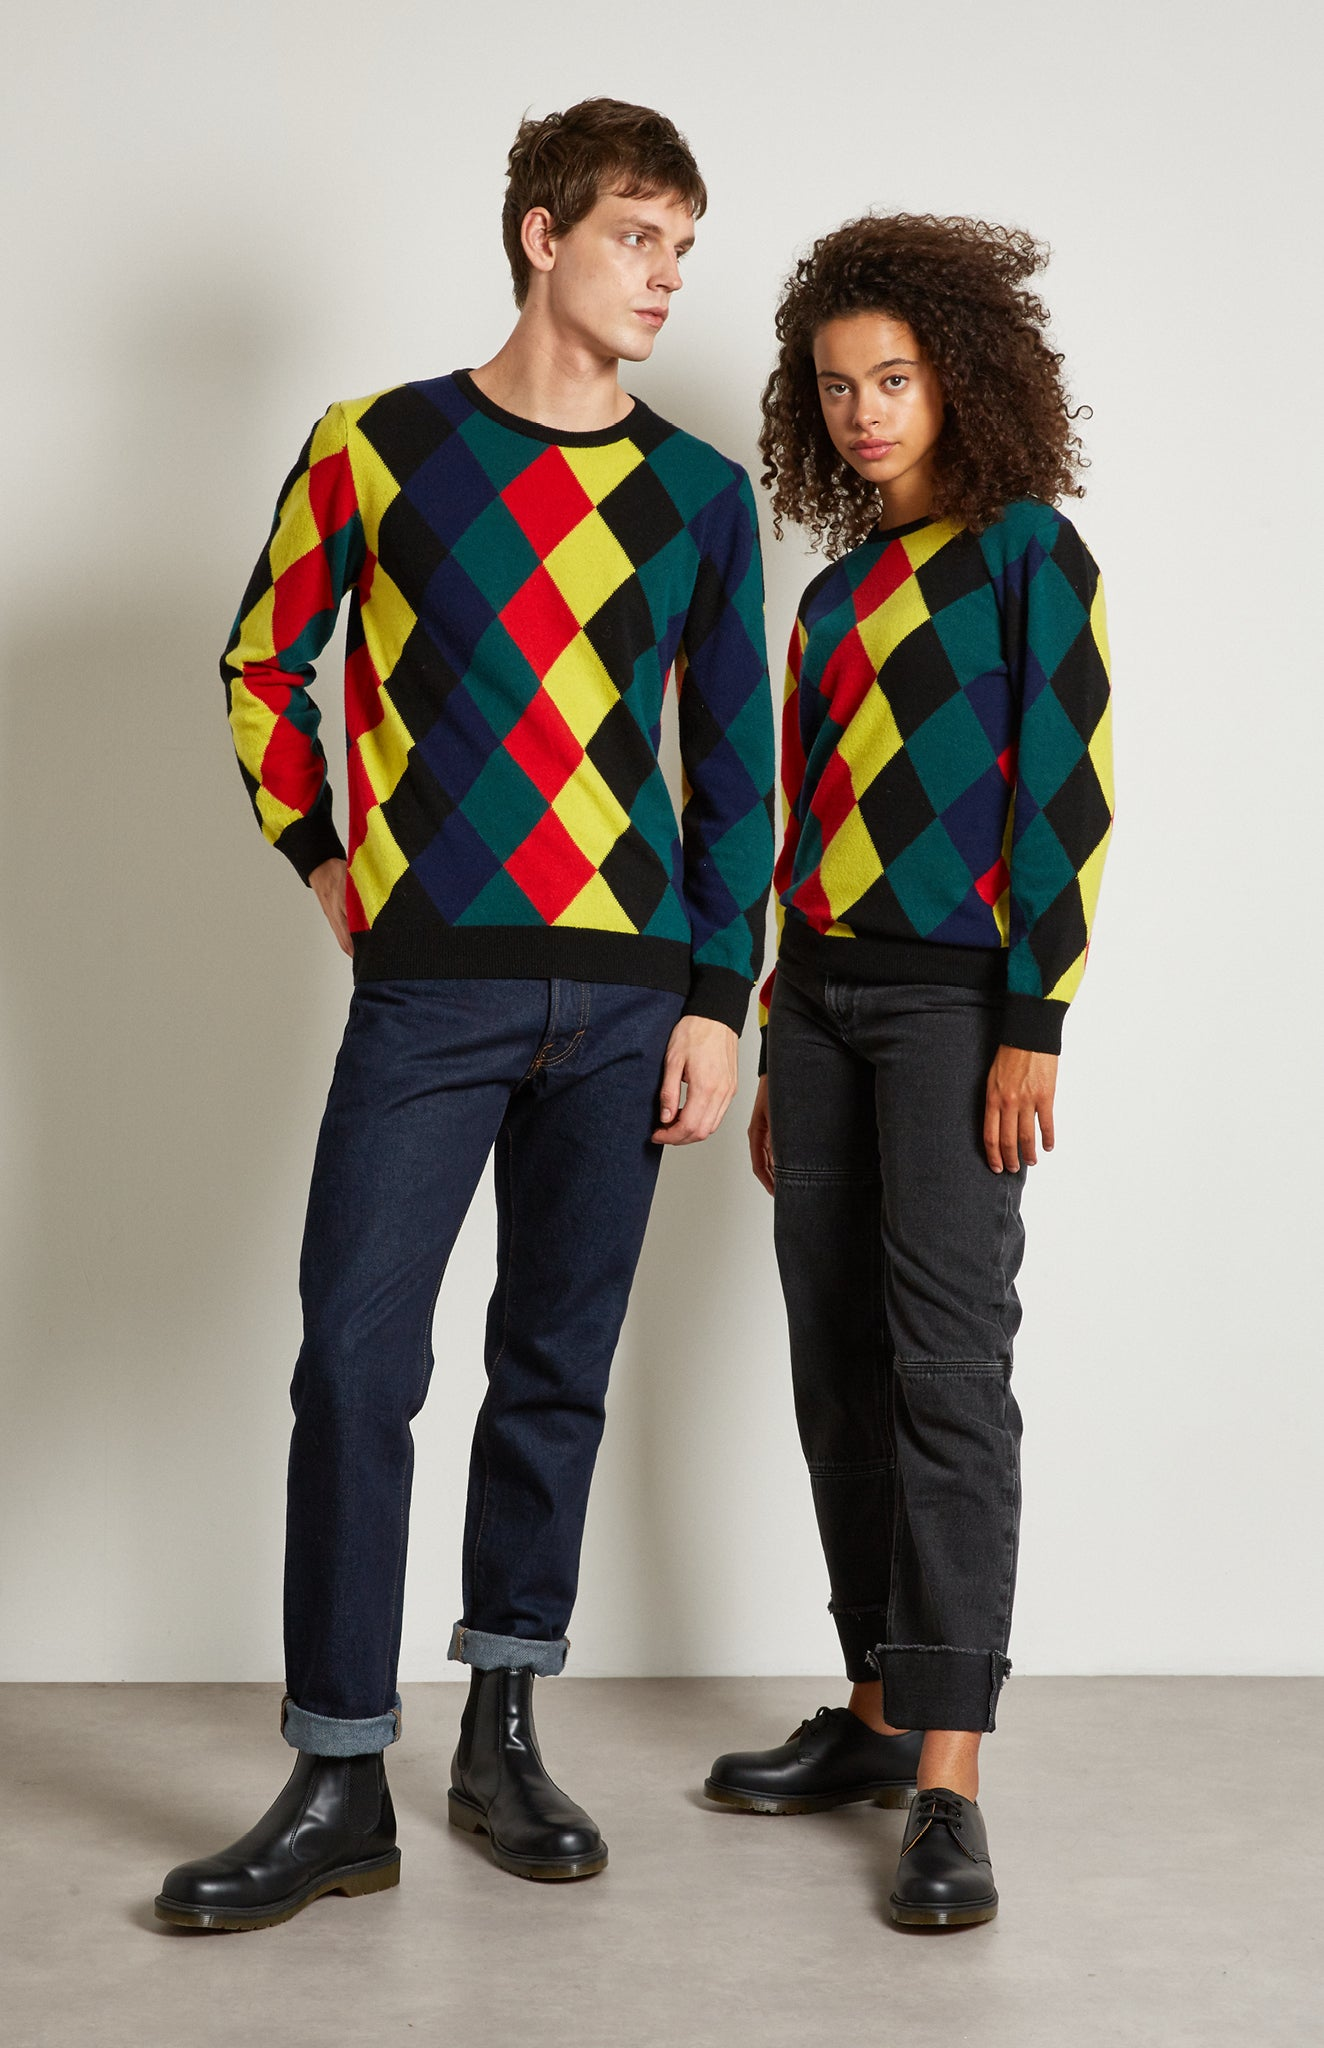 Pringle Reissued Unisex Harlequin Argyle Sweater in multi colours